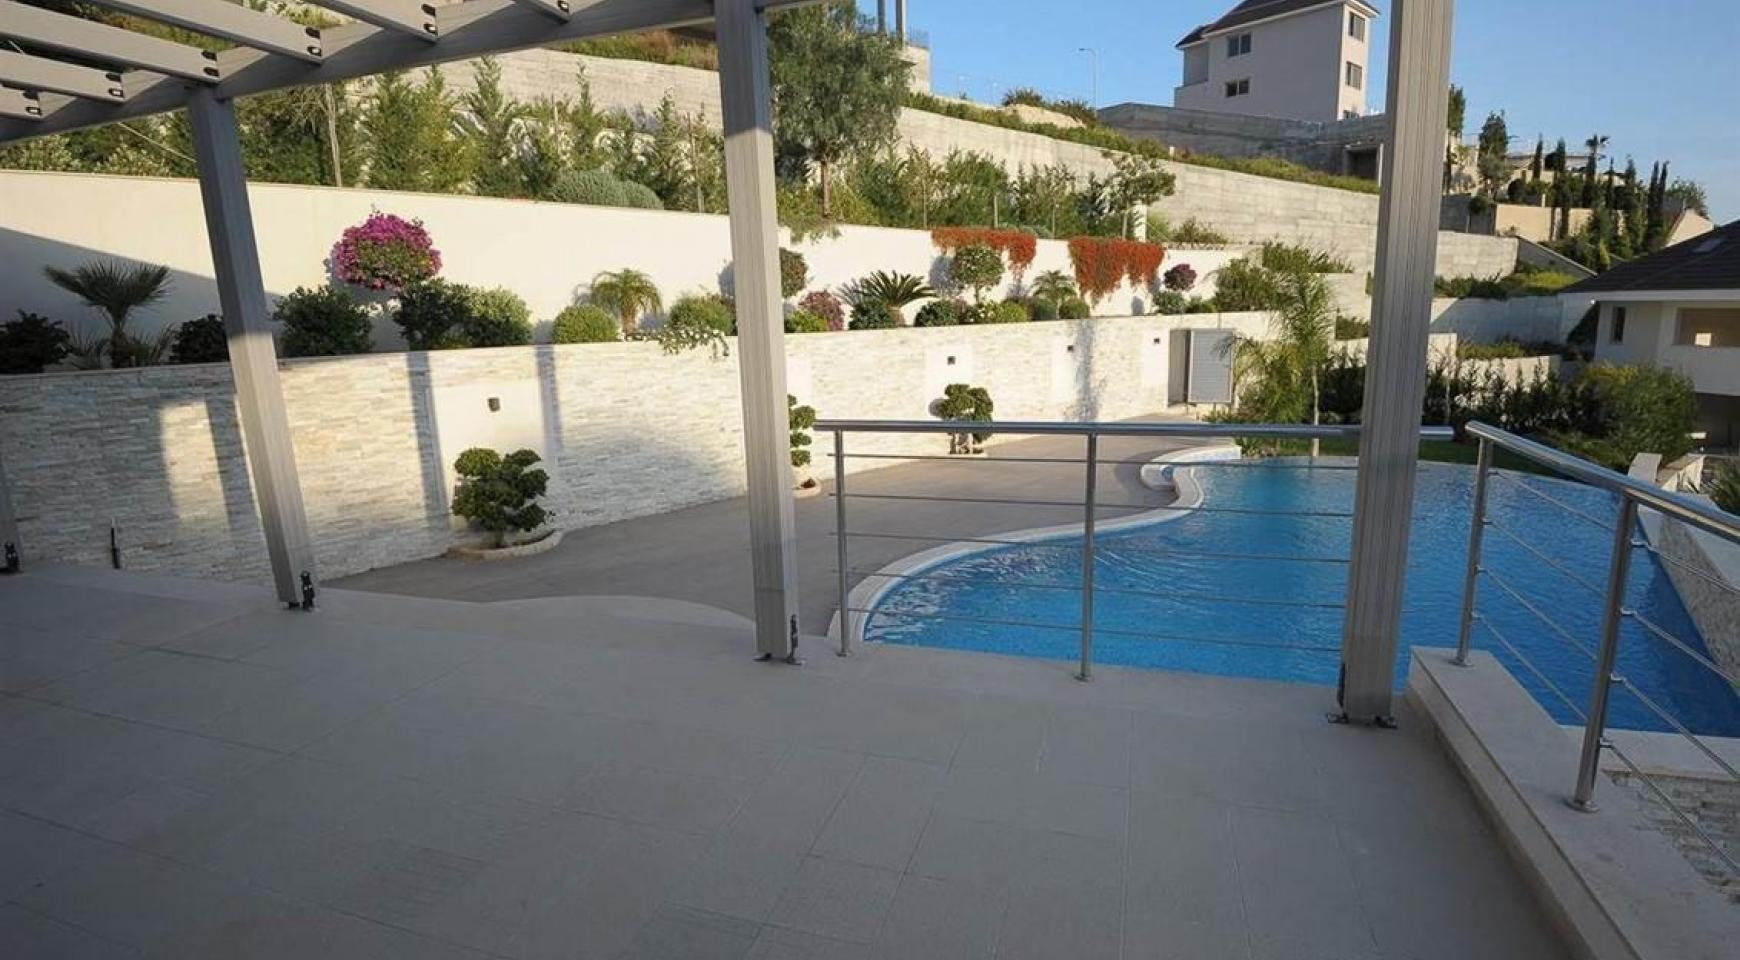 New Luxurious 5 Bedroom Villa with Stunning Views in Agios Tychonas - 3